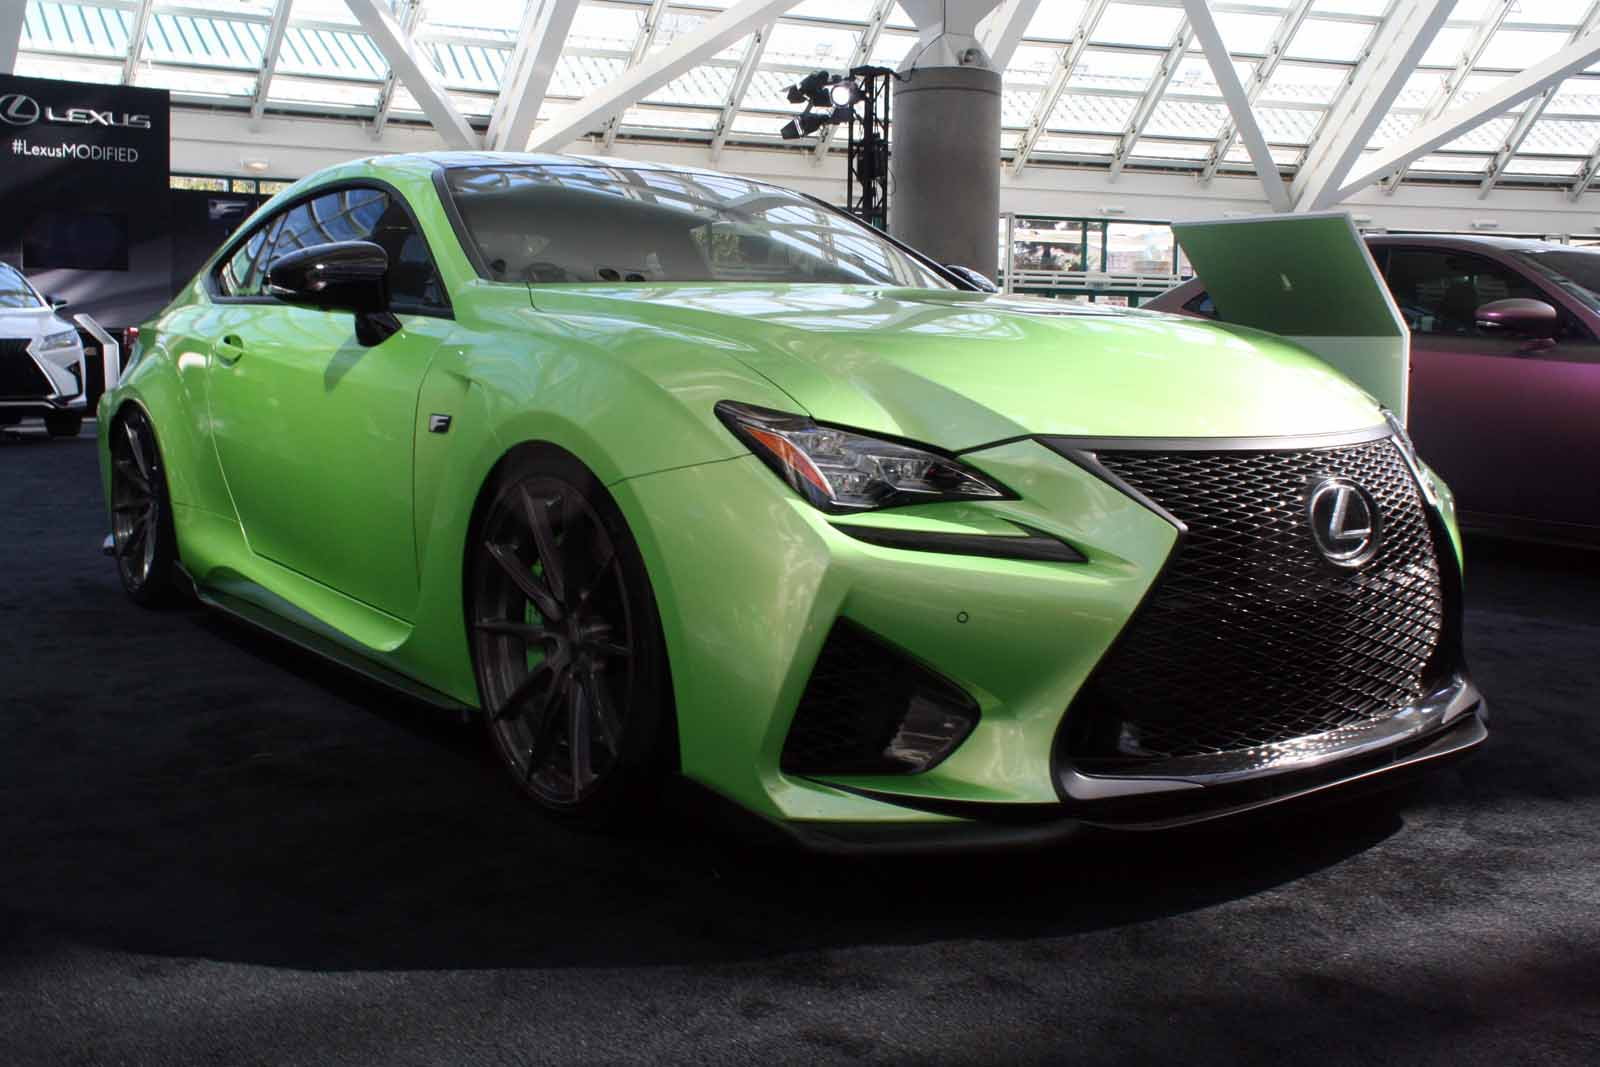 Gallery: Lexus Brings Army of Modified Cars to the LA Auto ...